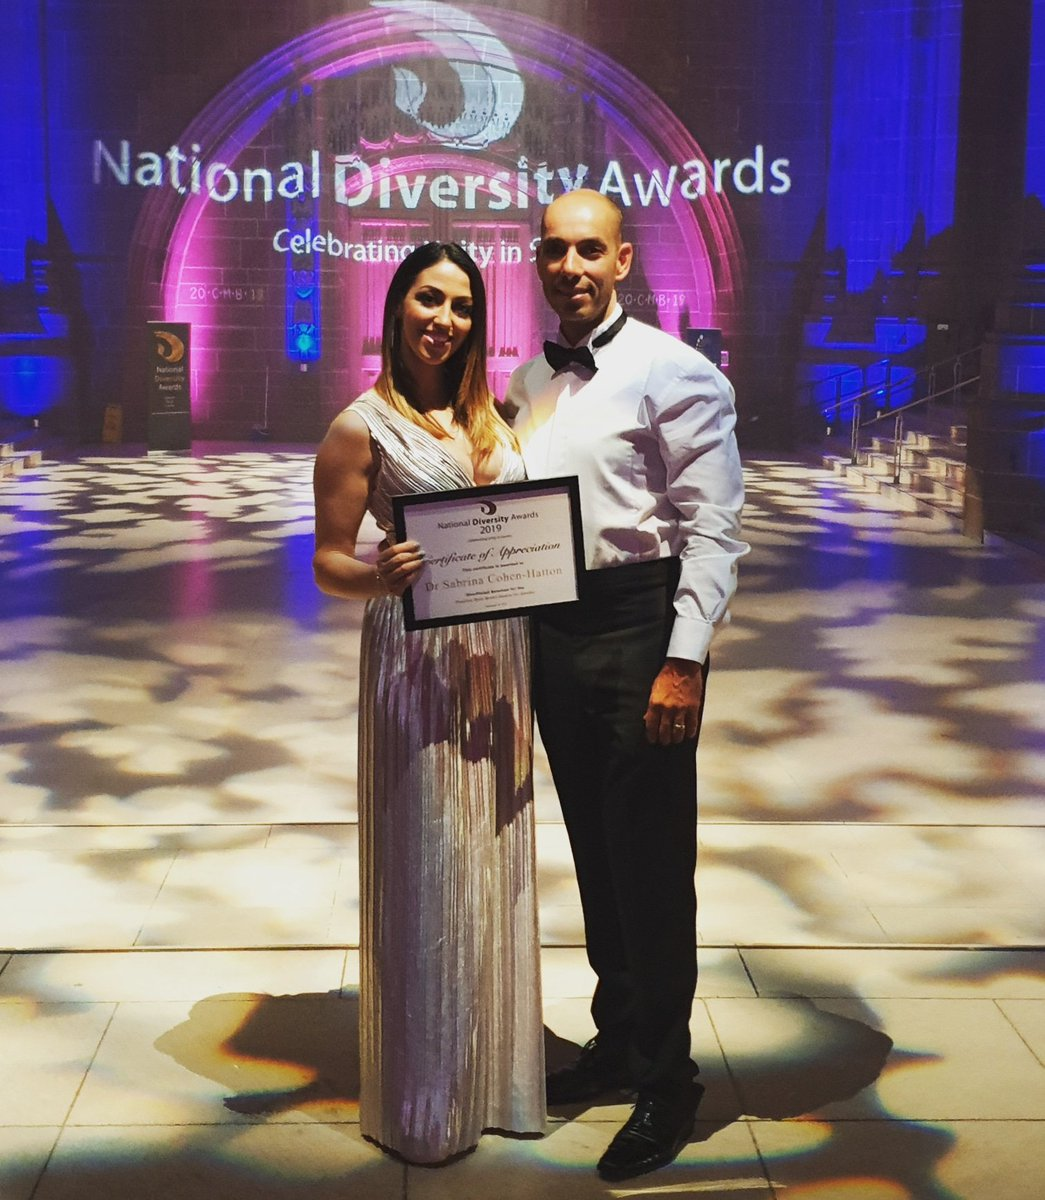 Its been a magical evening here at the @ndawards. It was so humbling to be shortlisted, and huge congratulations to @jossycare for being recognised for the amazing work you do. Ive heard so many inspiring stories and leave here tremendously uplifted 🔥🔥🔥